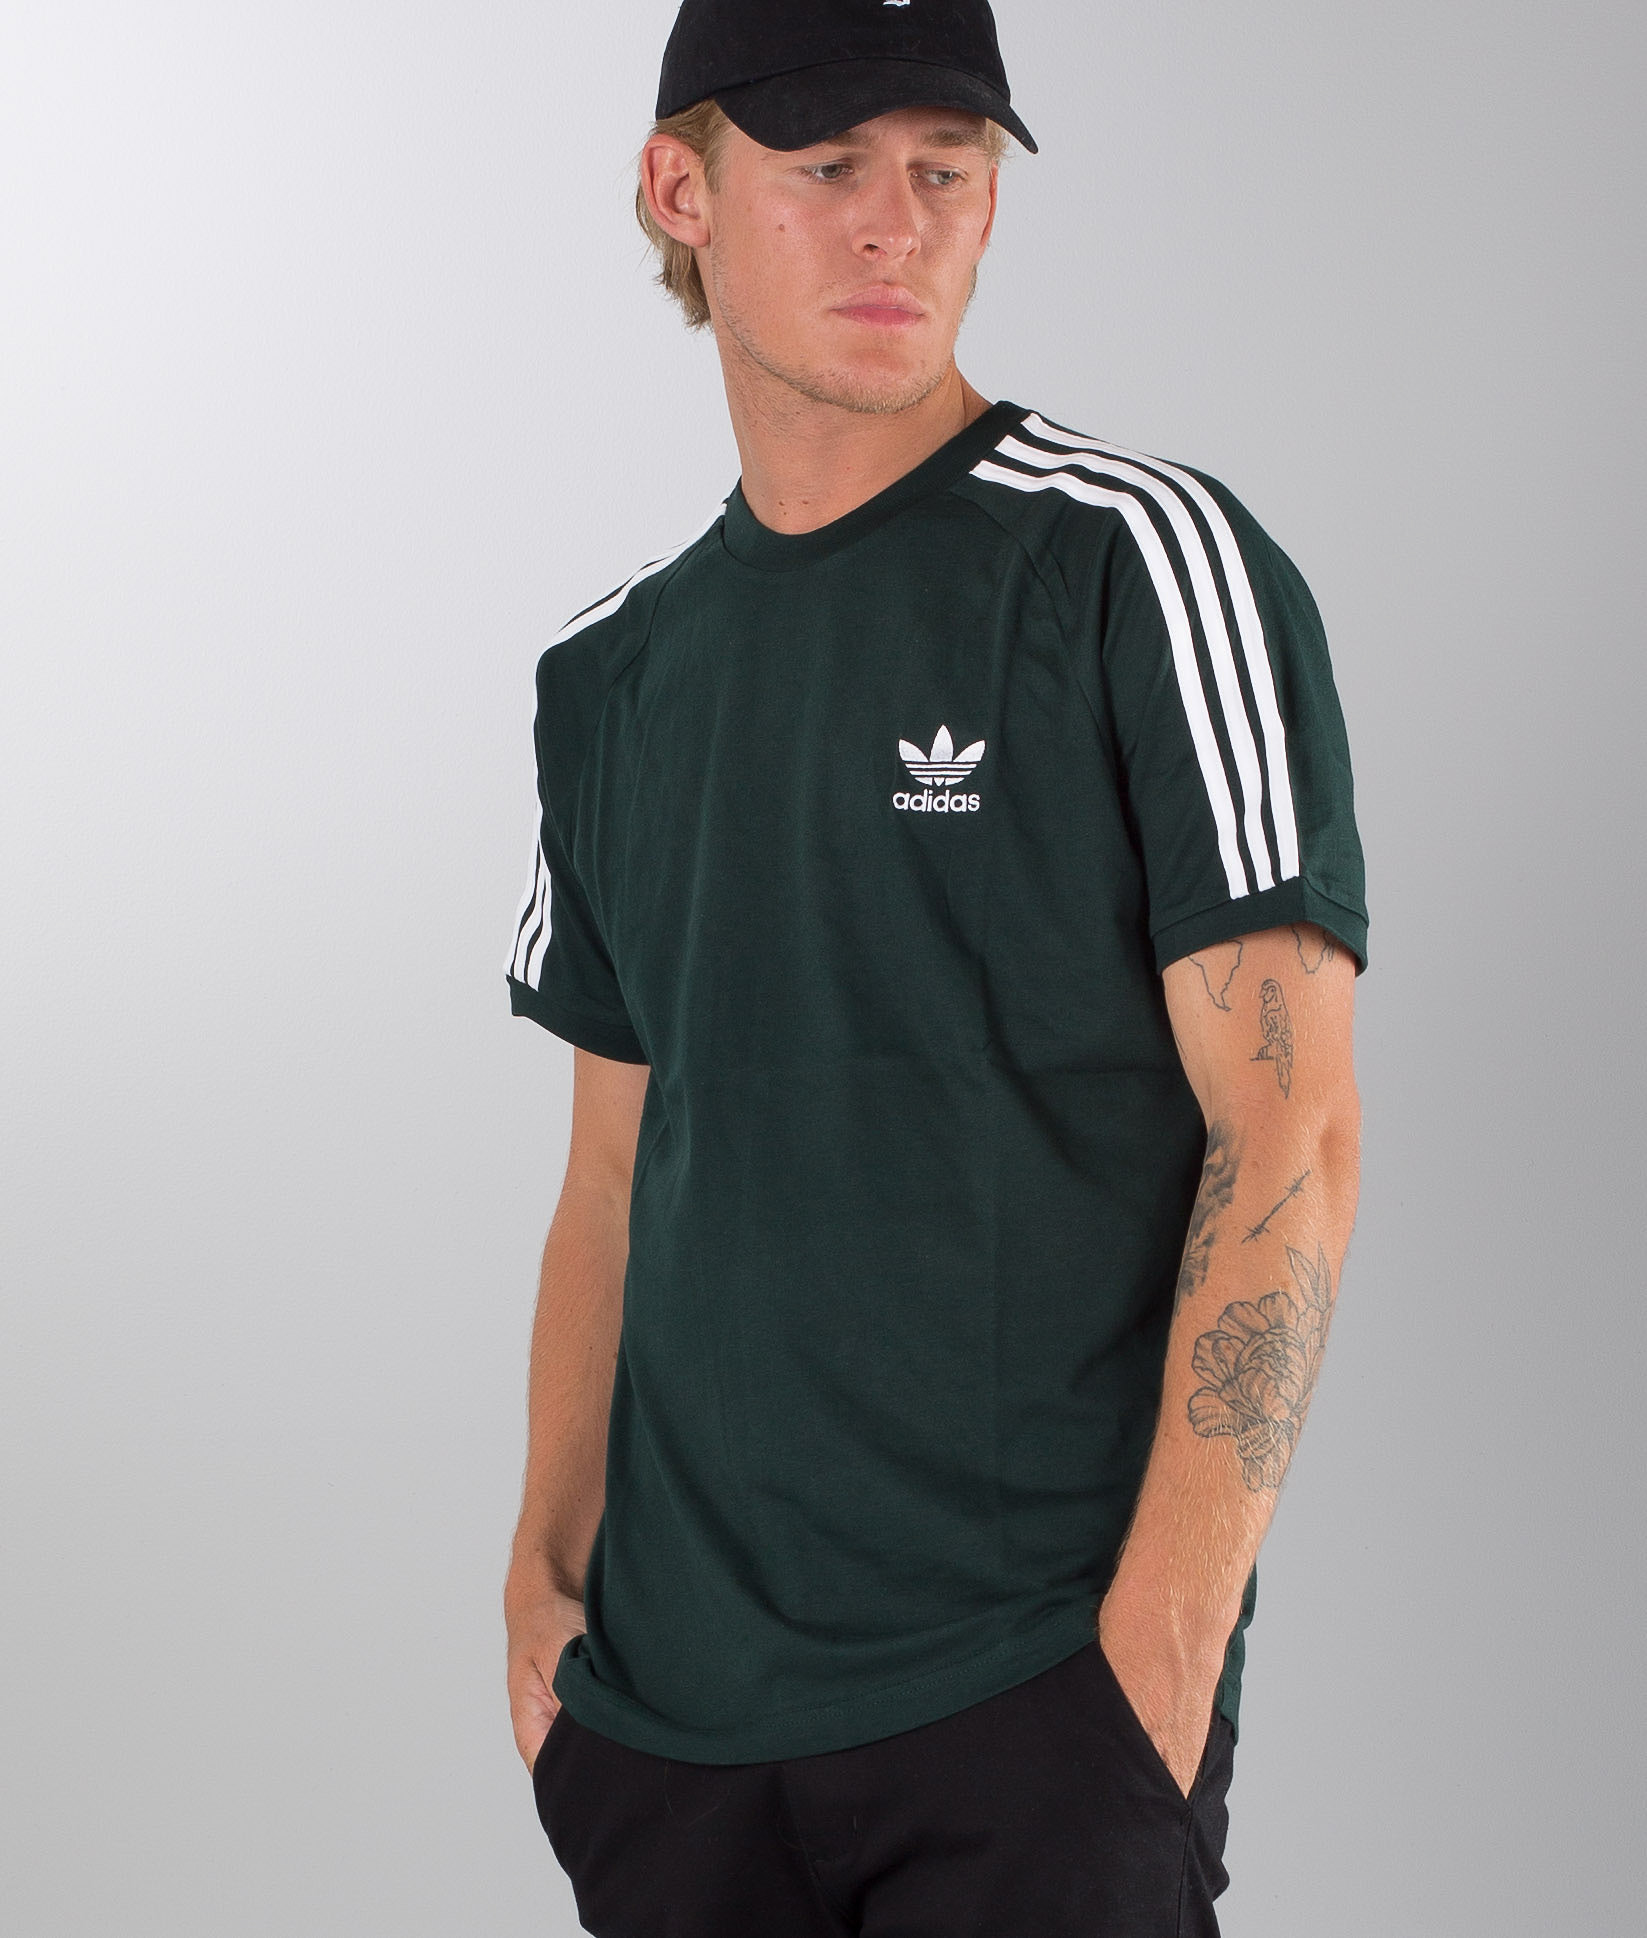 nouveau style b87aa fa5a0 Adidas Originals 3-Stripes T-shirt Green Night